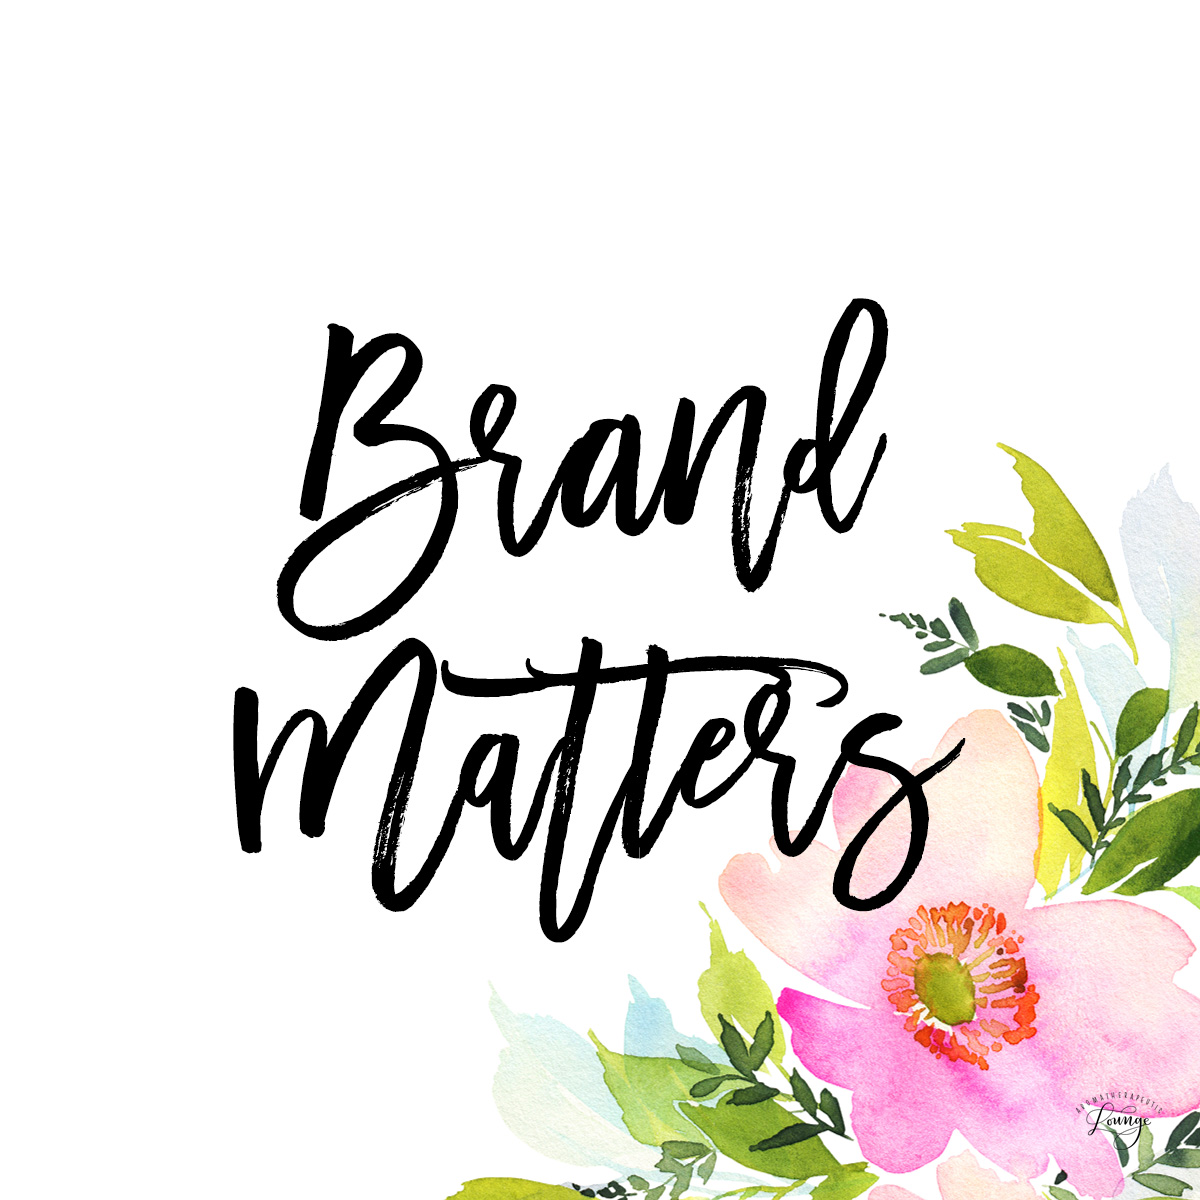 Essential Oils for Beginners - Brand Matters (Floral)